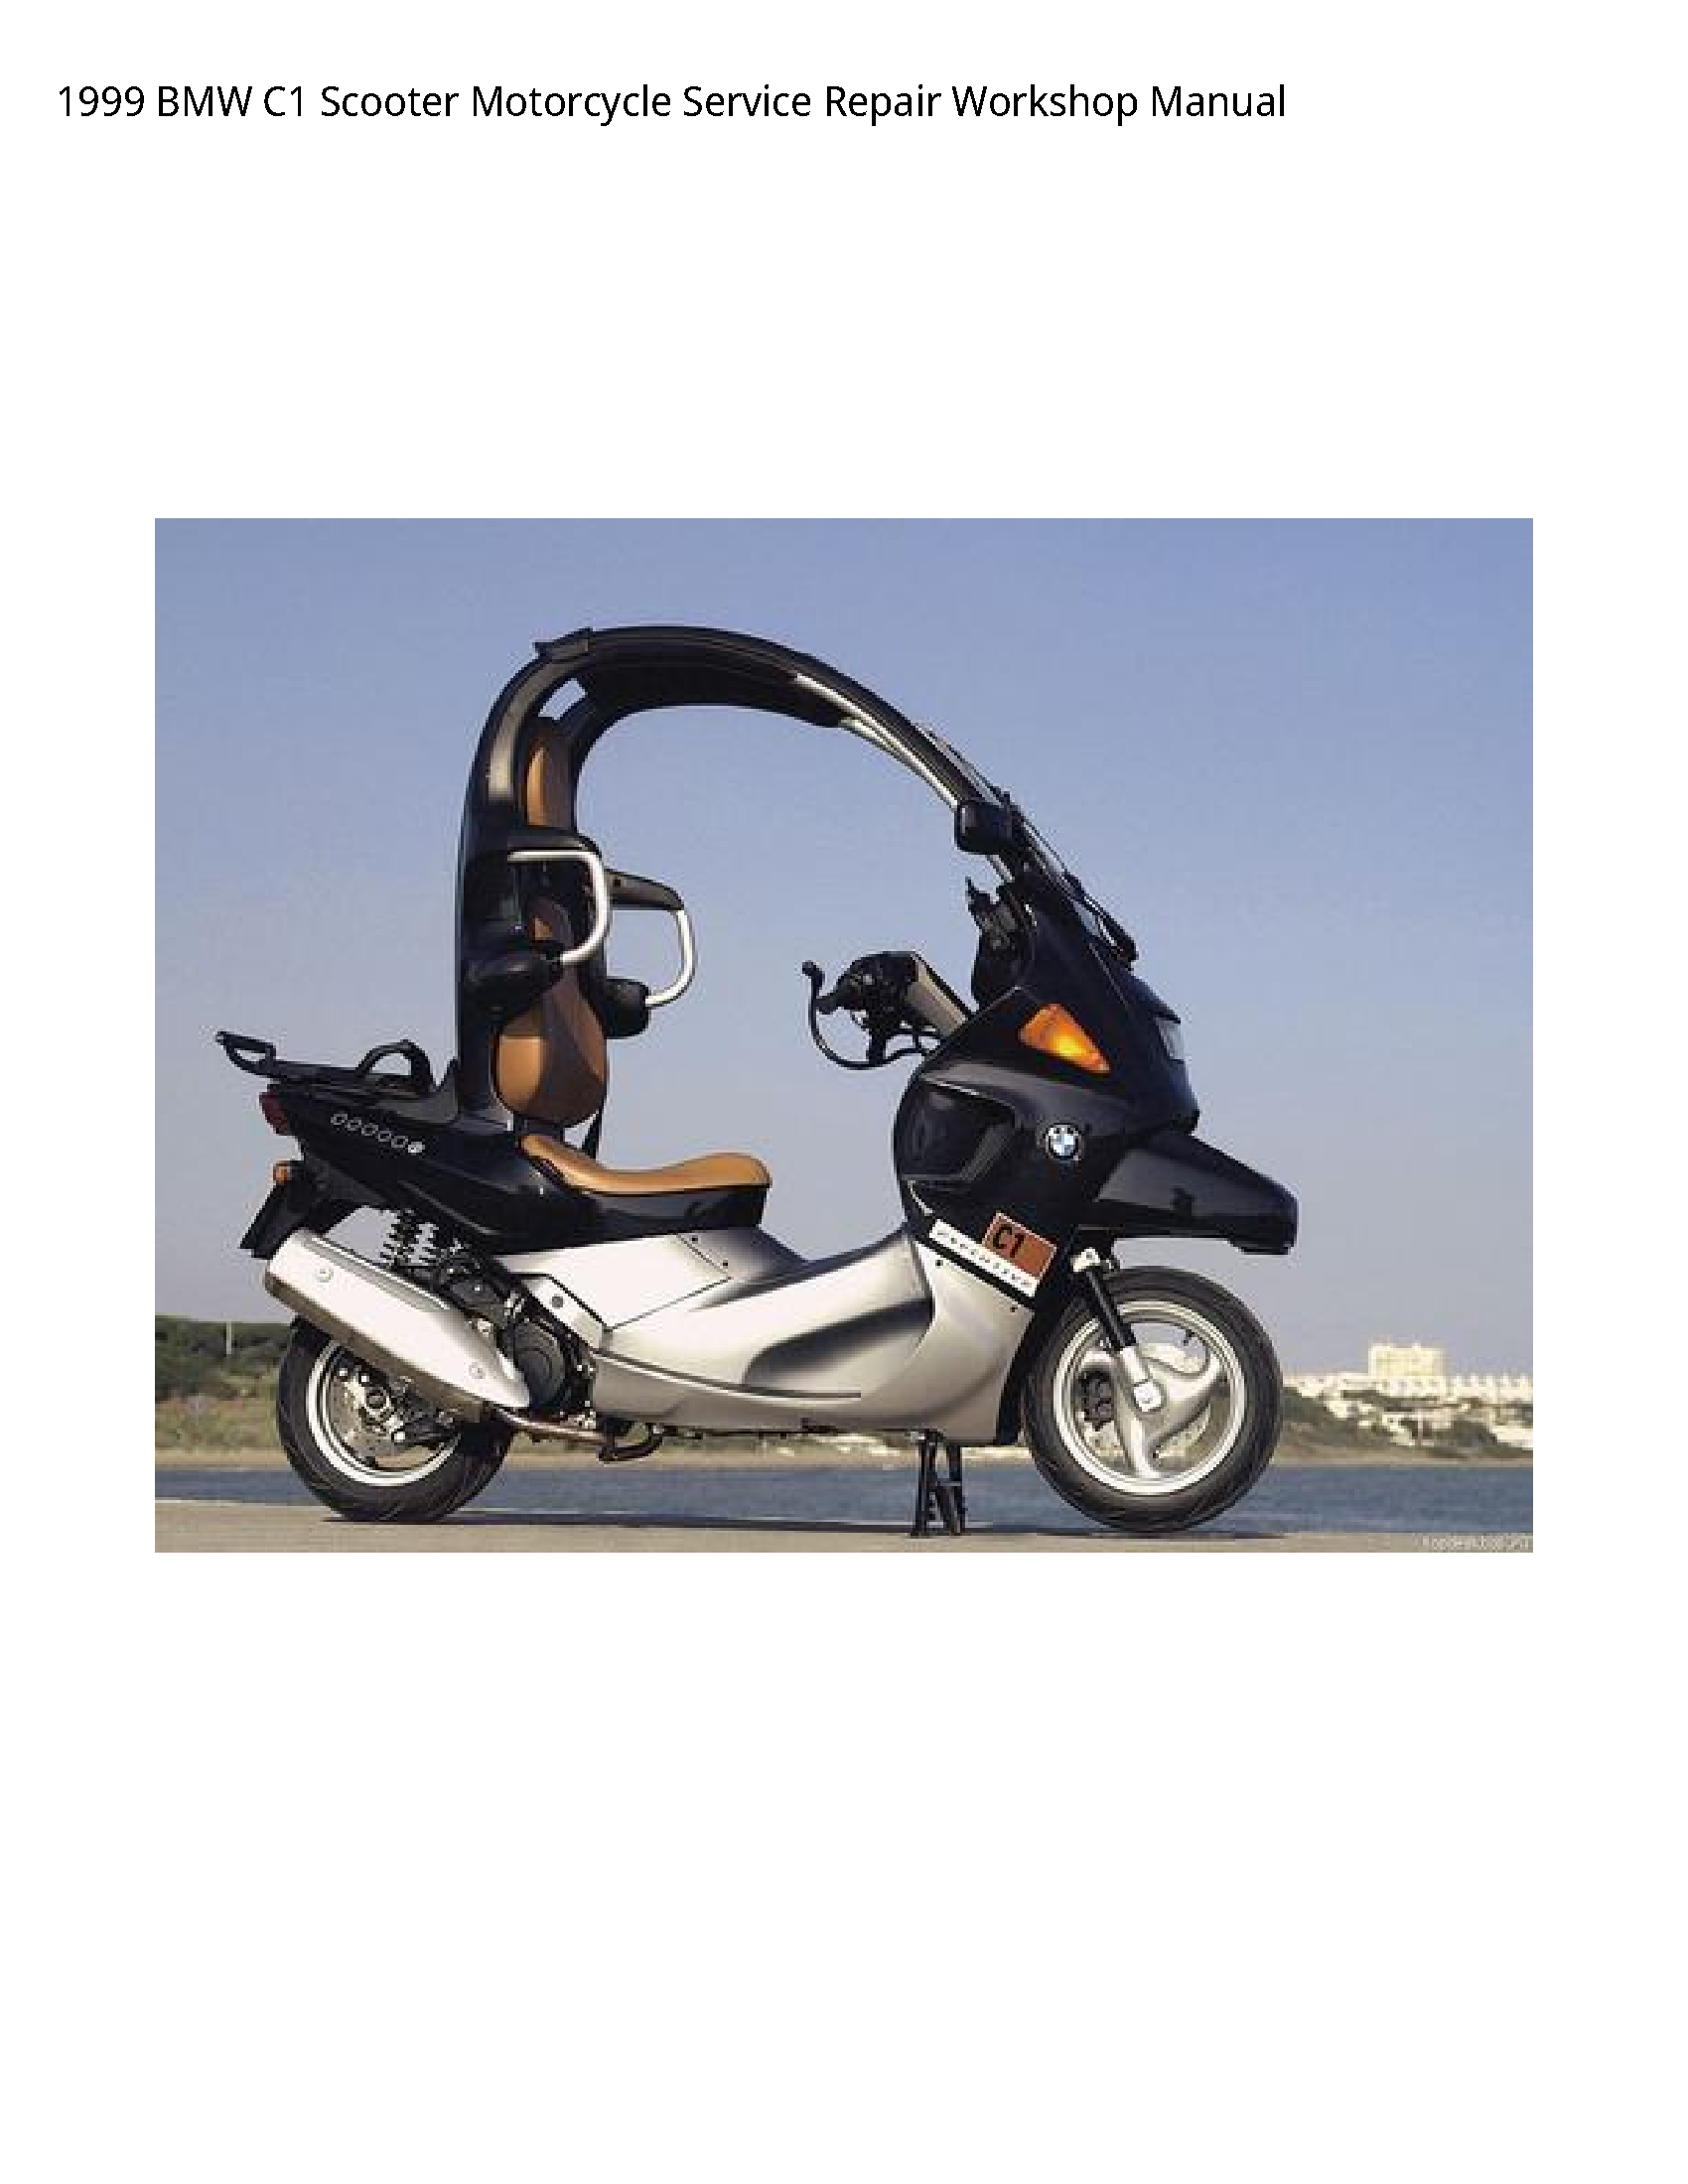 BMW C1 Scooter Motorcycle manual